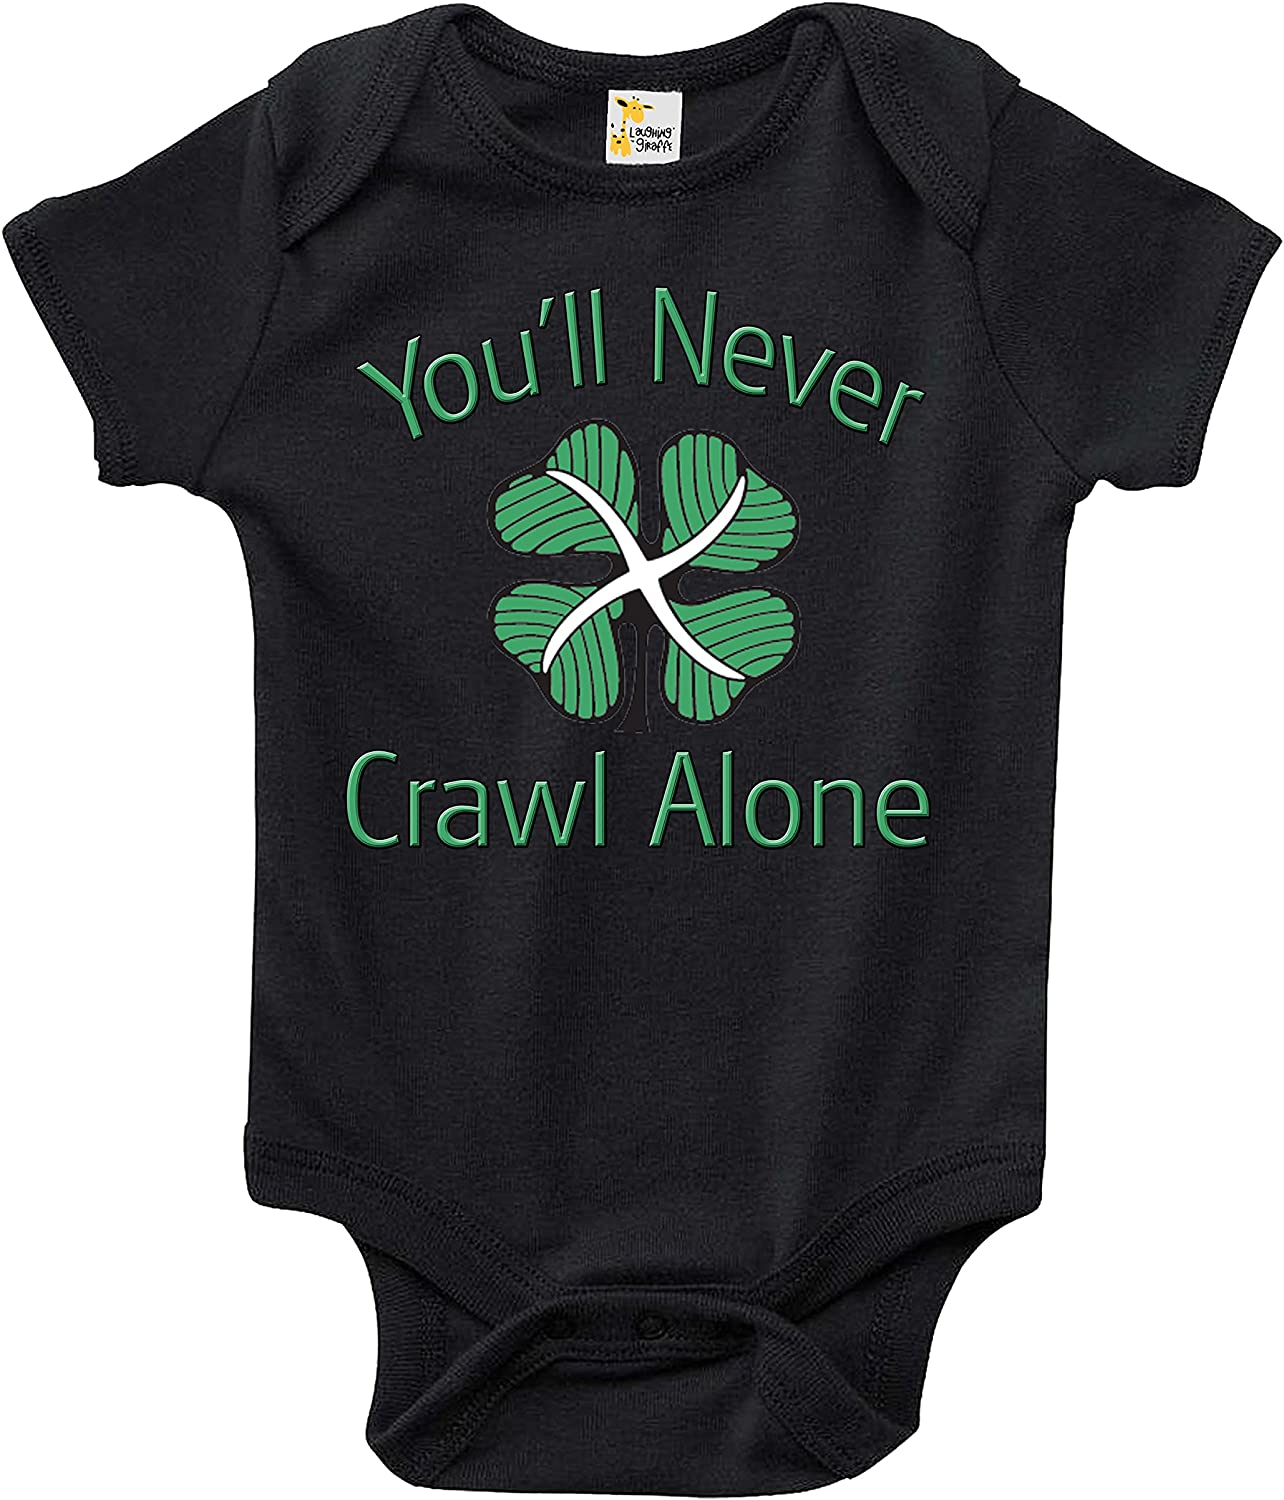 Rapunzie Celtic FC Youll Never Crawl Alone Baby Bodysuit Cute Infant Baby Clothes